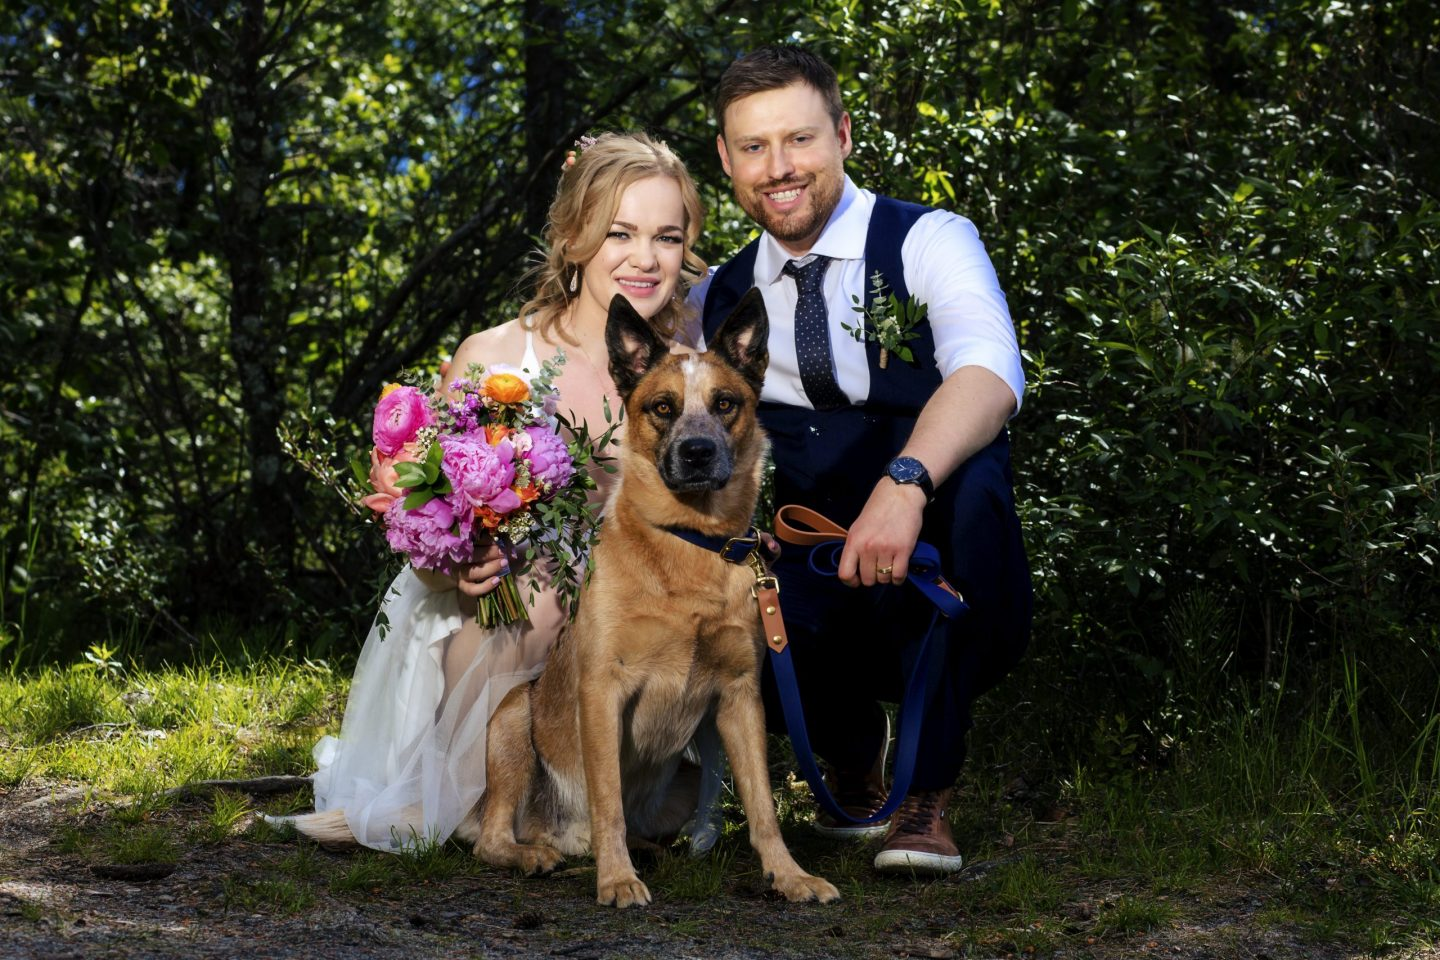 wedding couple crouching down and posing with dog in the centre- getting married in Jasper